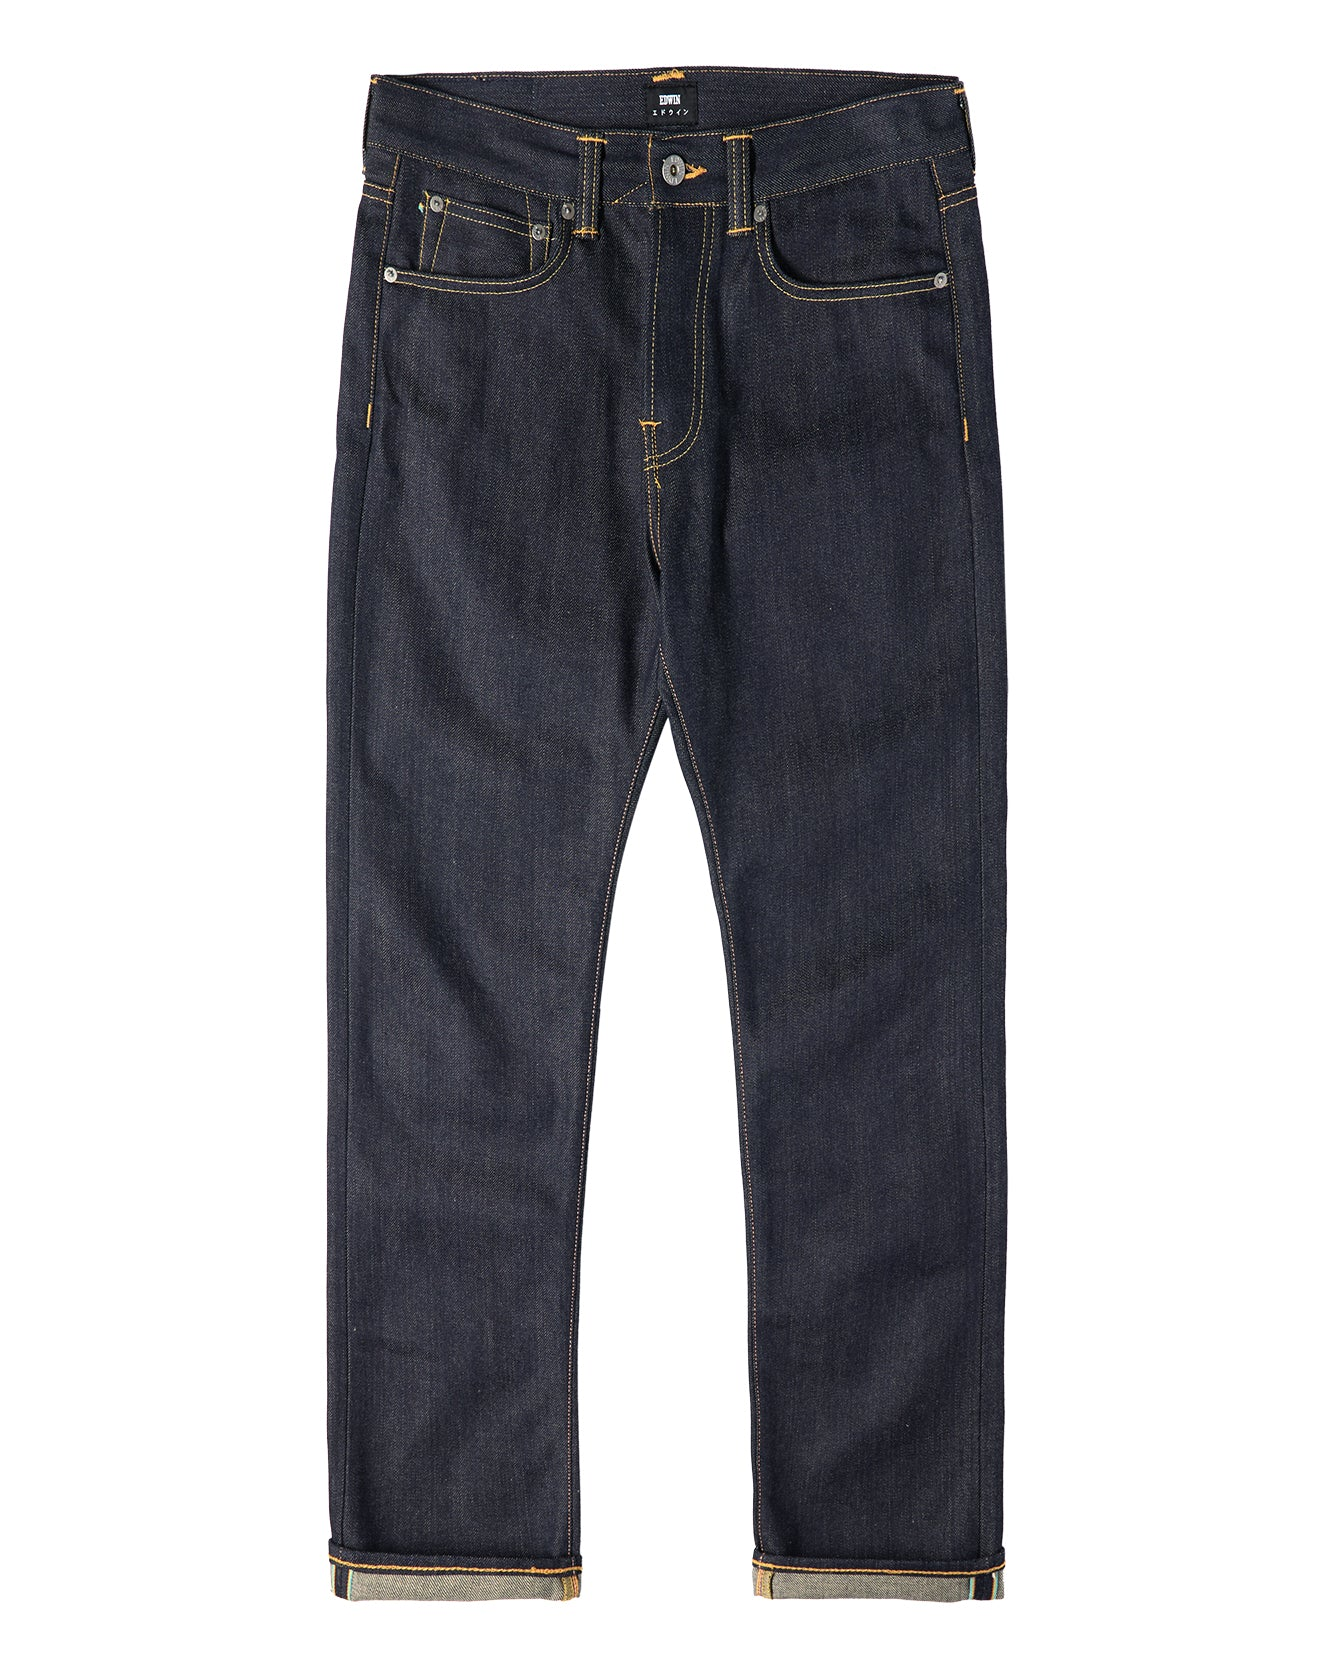 ED-80 - 63 Rainbow Selvage - Unwashed